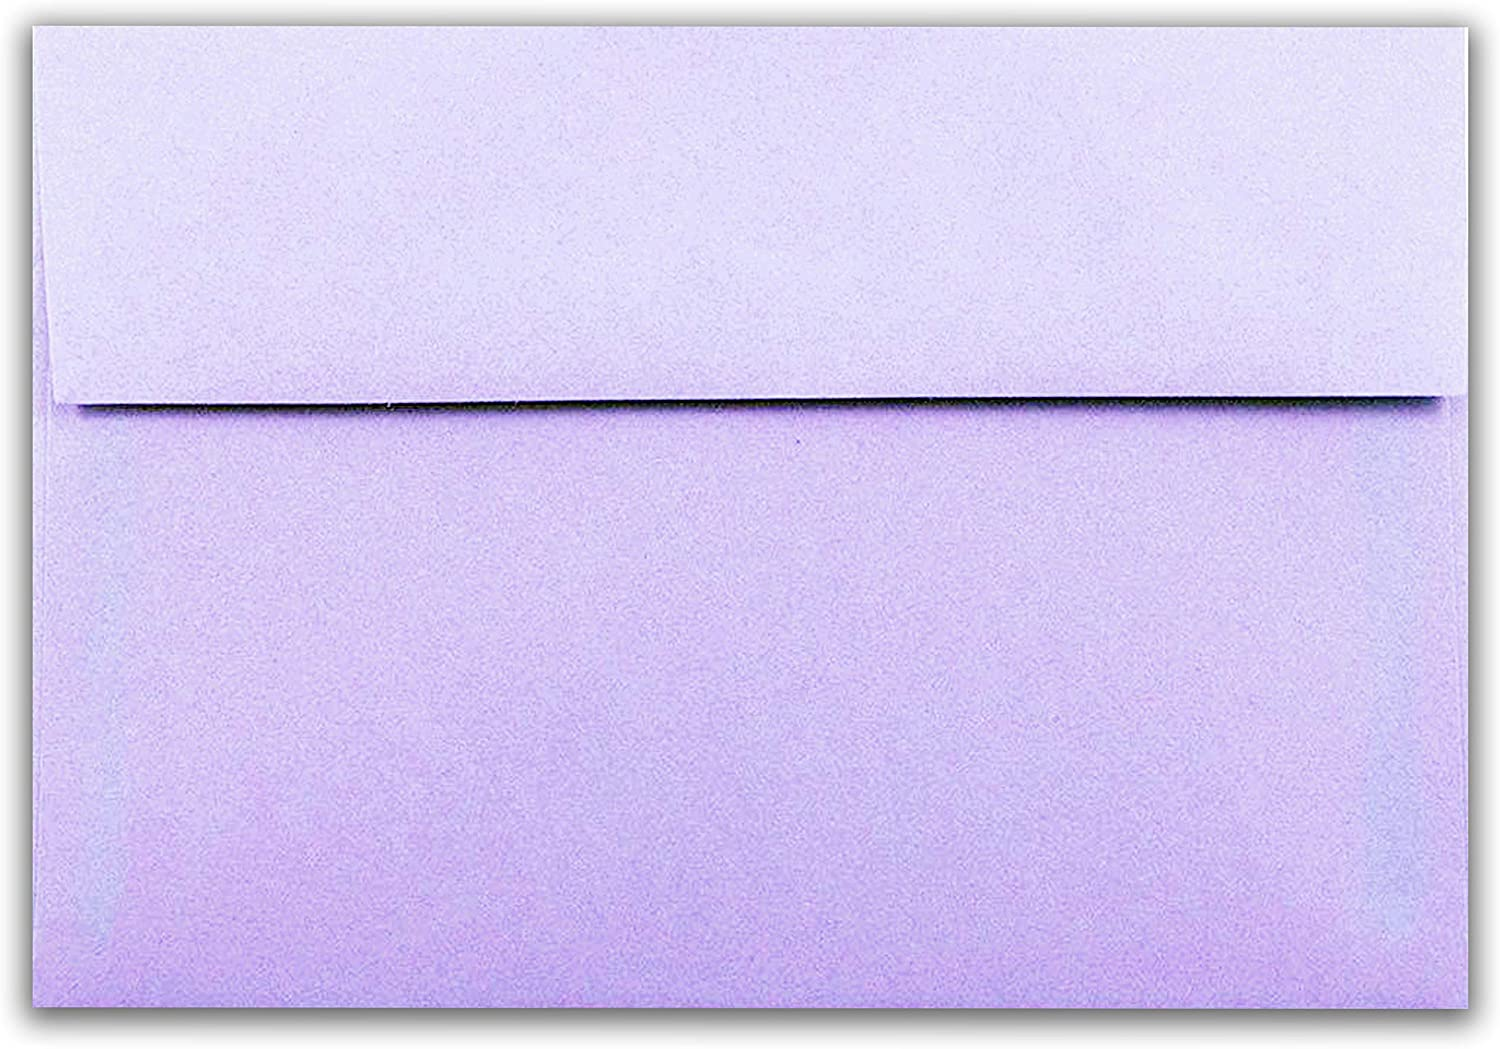 Amethyst Purple 50 Boxed A7 5-1//4 x 7-1//4 Announcements from The Envelope Gallery Invitations Envelopes for 5 X 7 Greeting Cards